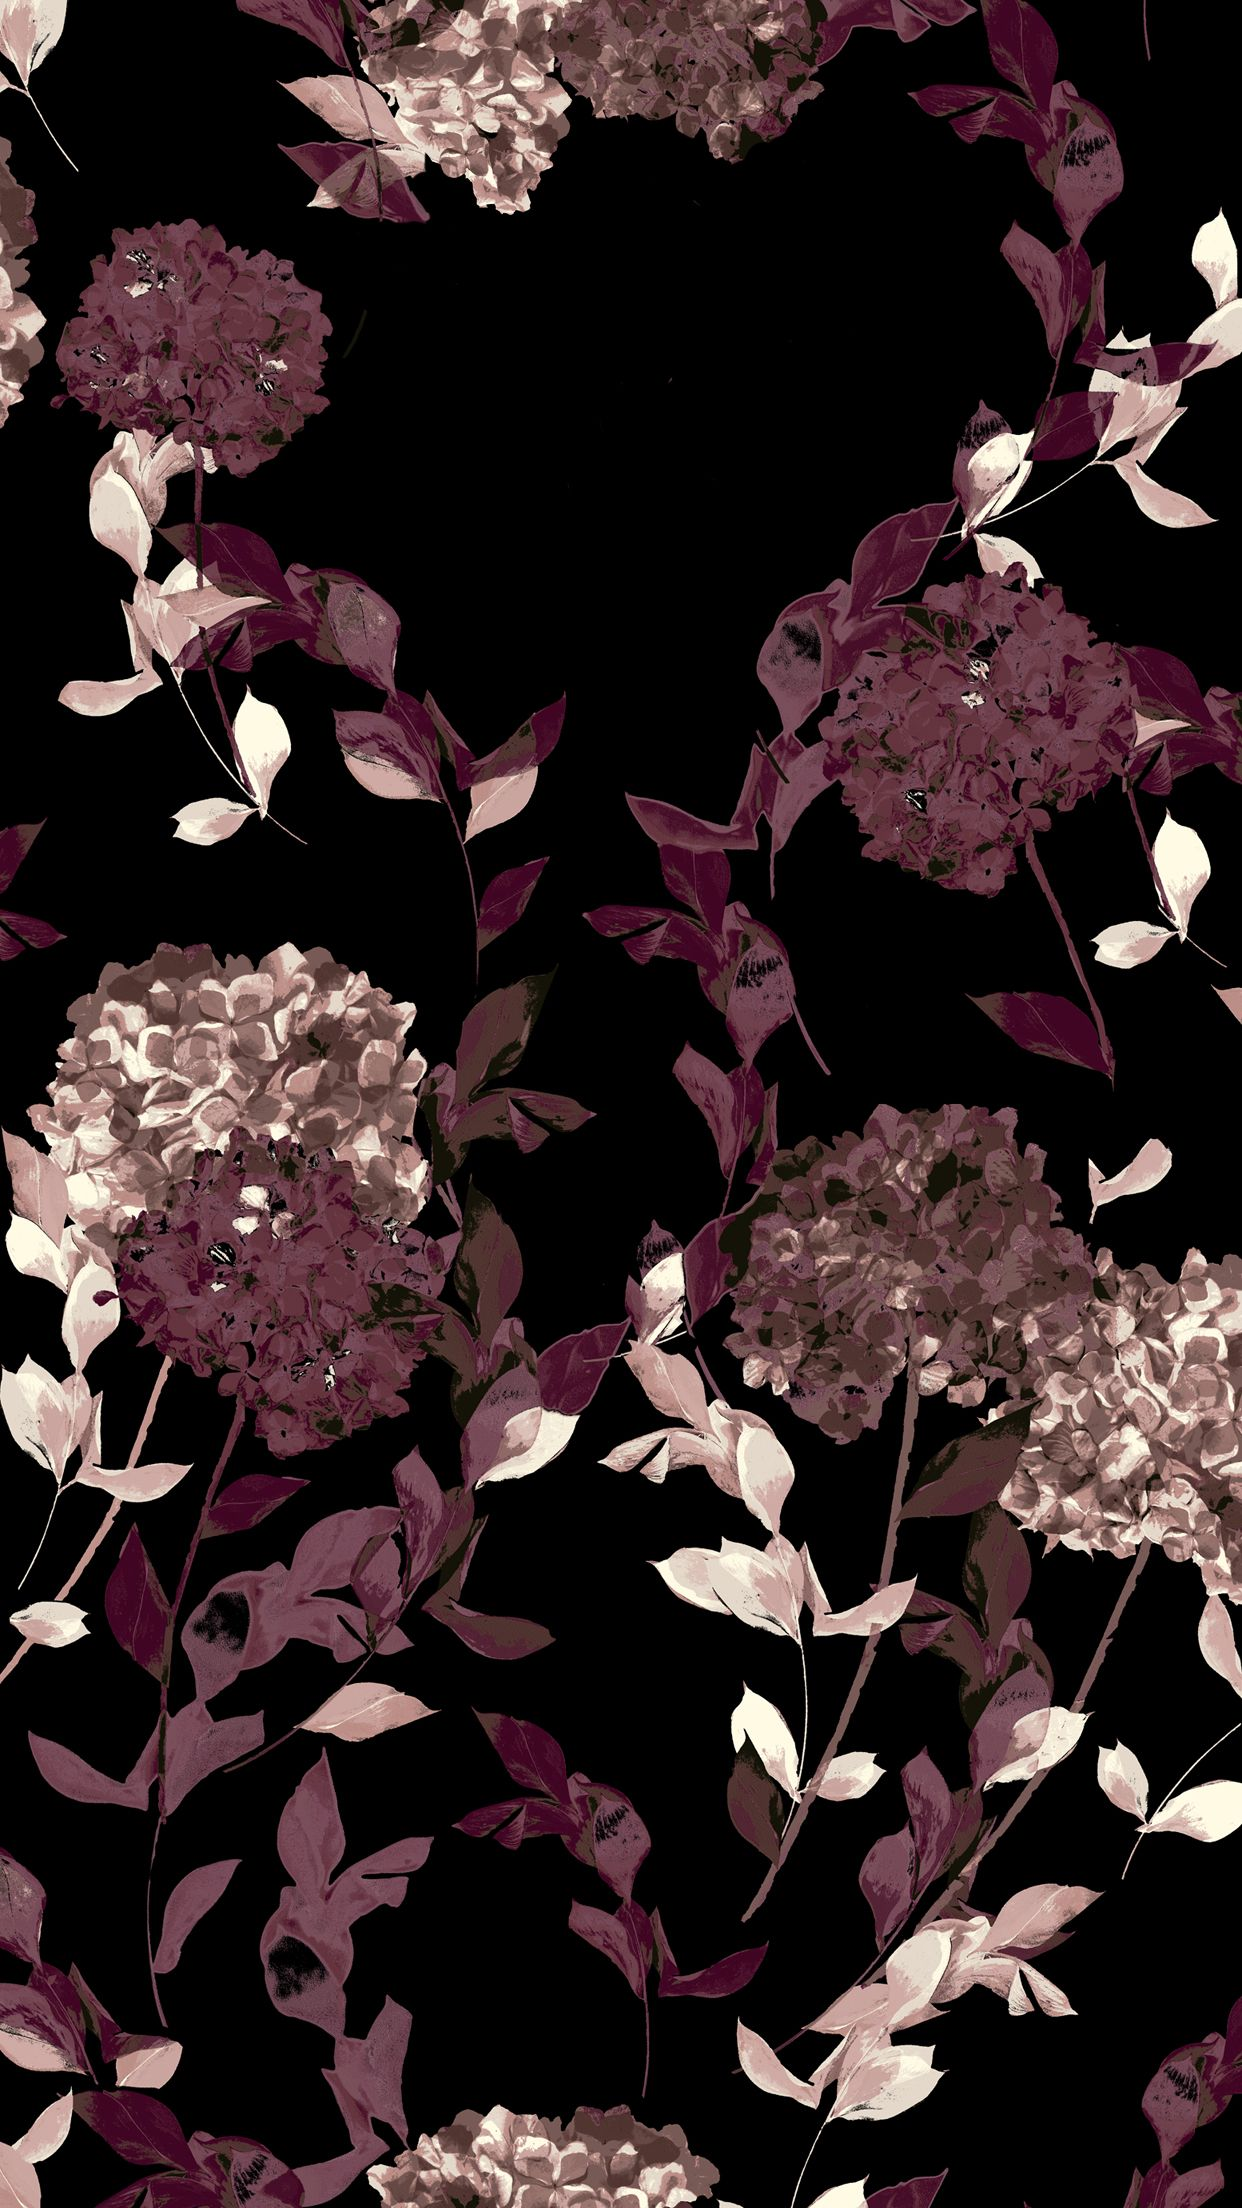 Dark Floral Iphone Wallpapers Top Free Dark Floral Iphone